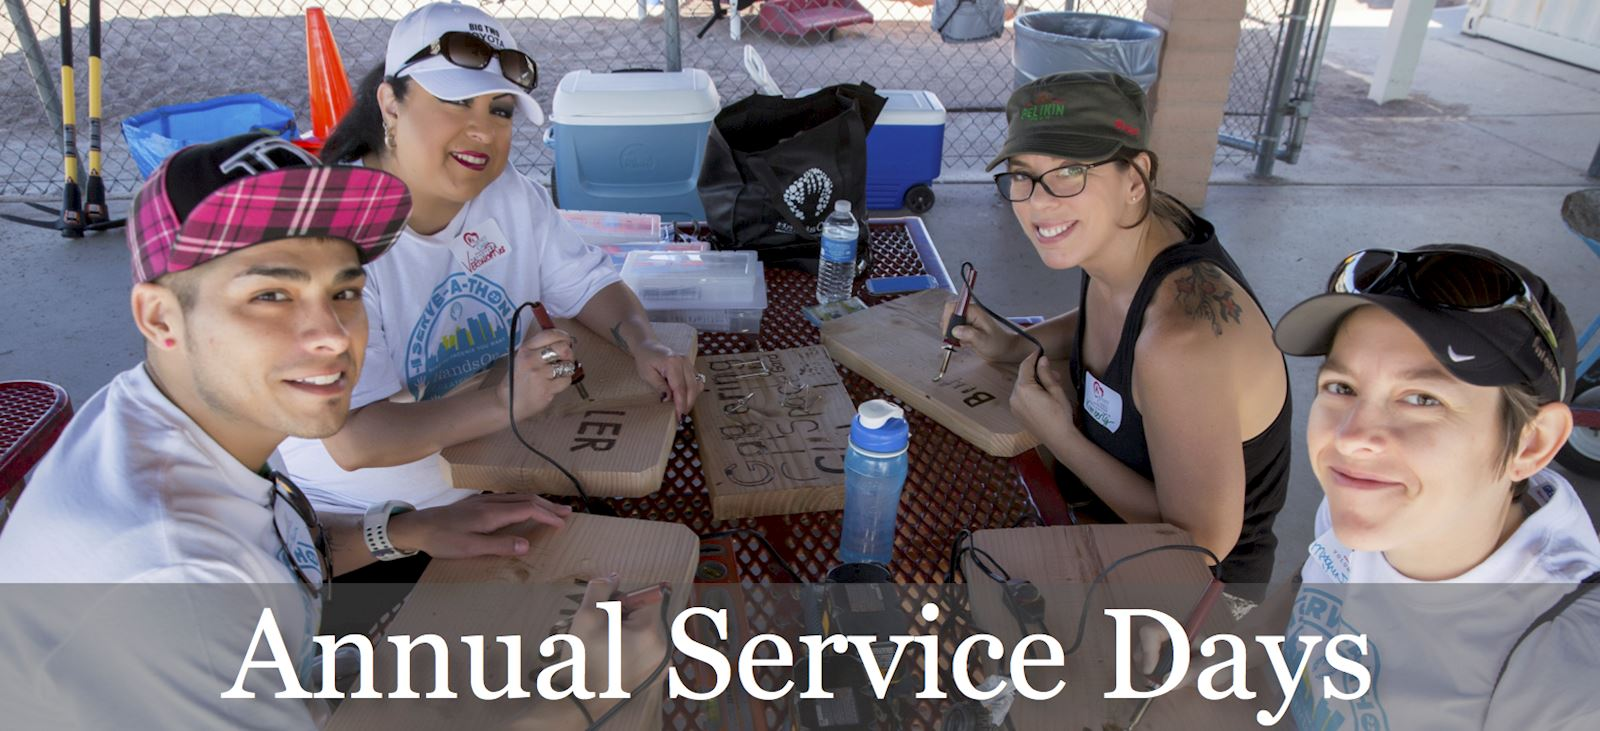 Annual Service Days